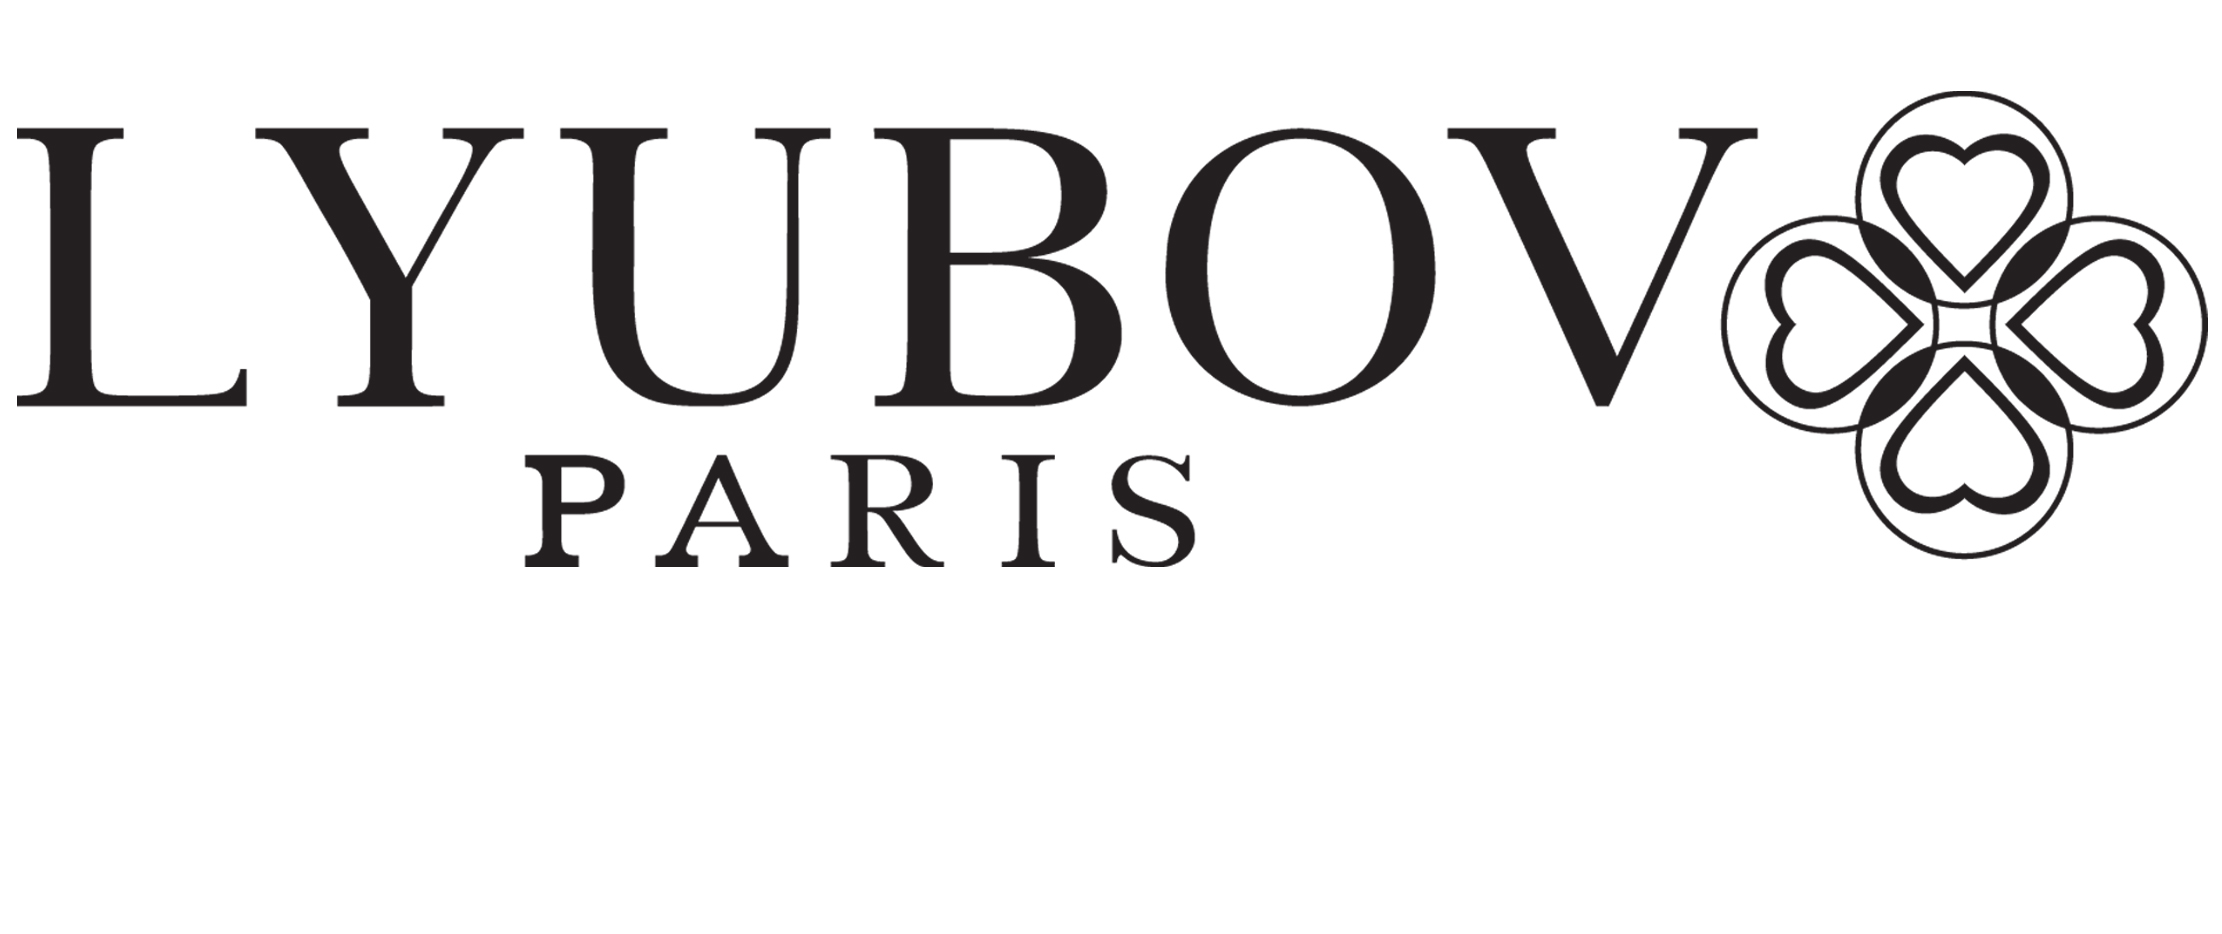 LYUBOV PARIS